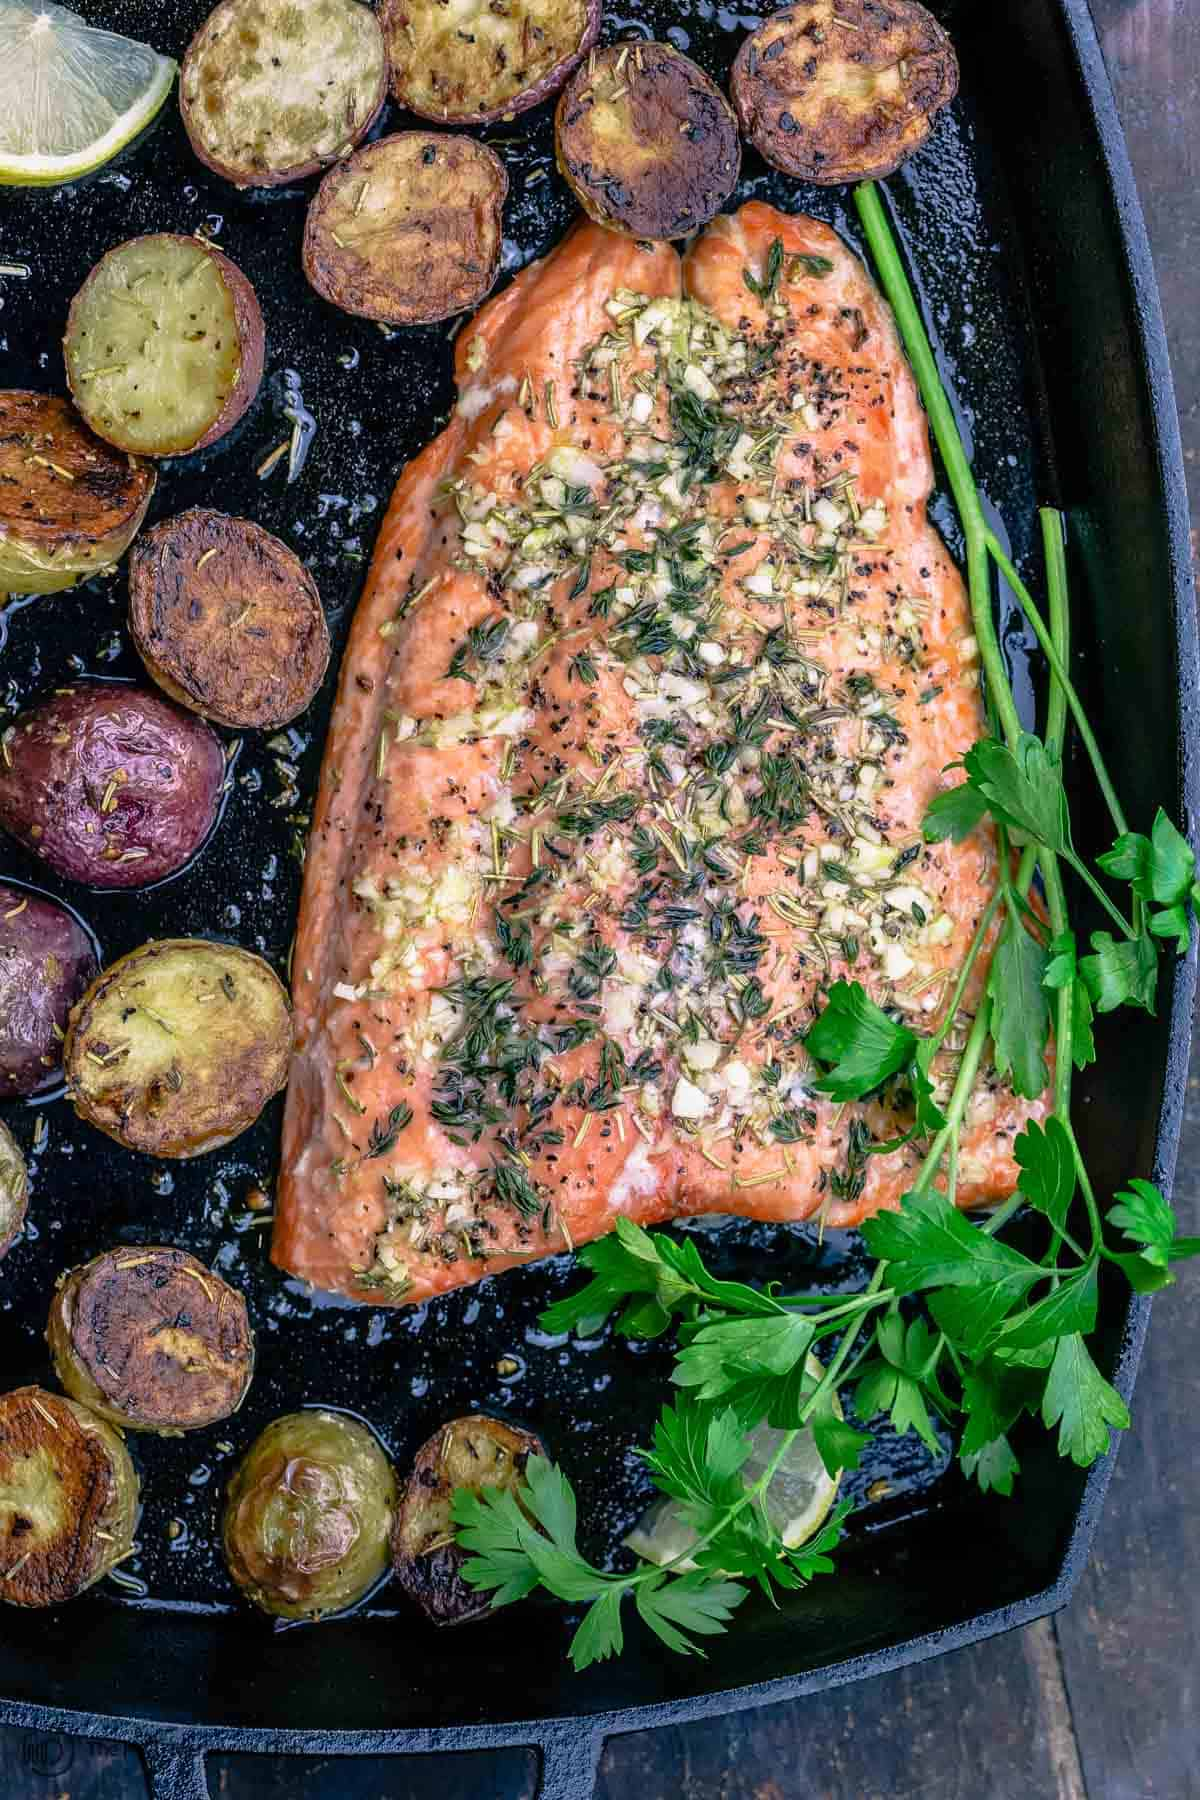 Slow roasted salmon in pan with potatoes and parsley